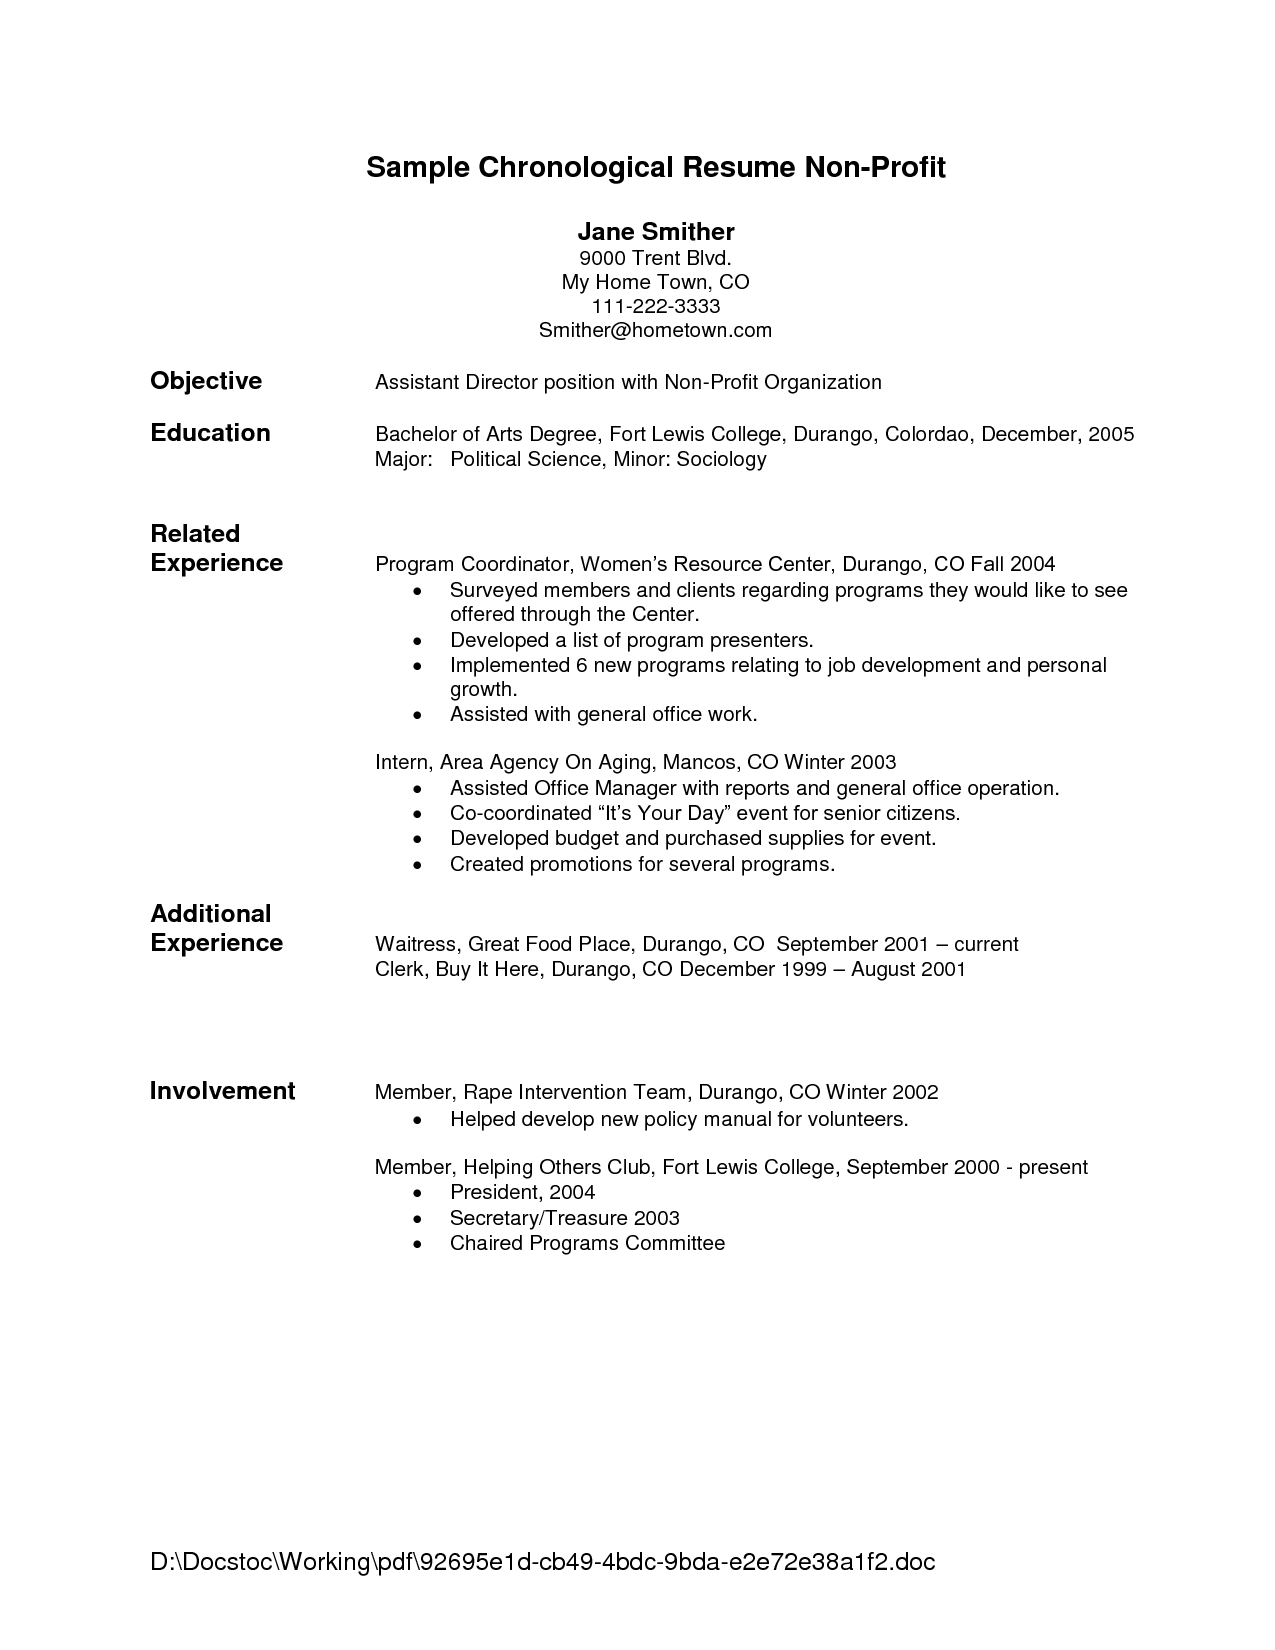 Resume Letter Examples Waitress Resume Template Examples  Sample Resume Center